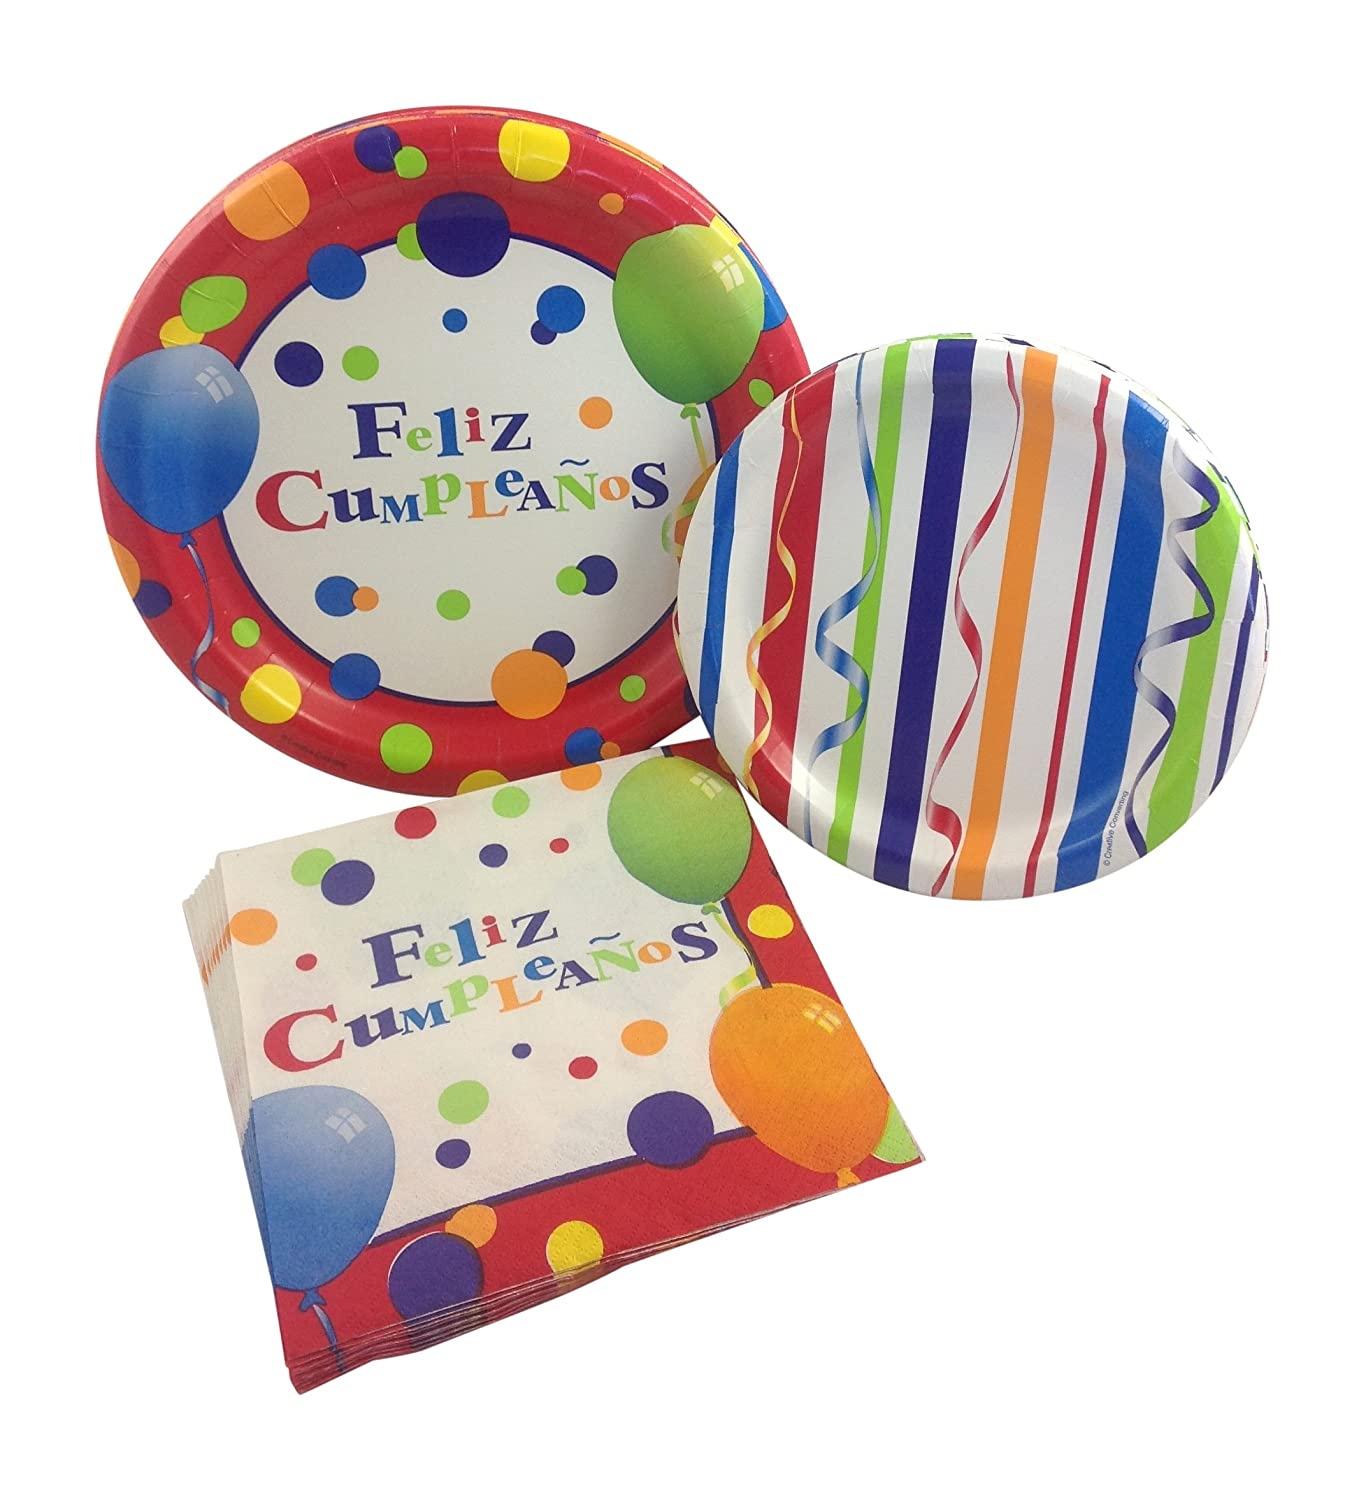 Feliz Cumpleaños Birthday Party Supply Pack! Bundle Includes Paper Plates & Napkins for 8 Guests